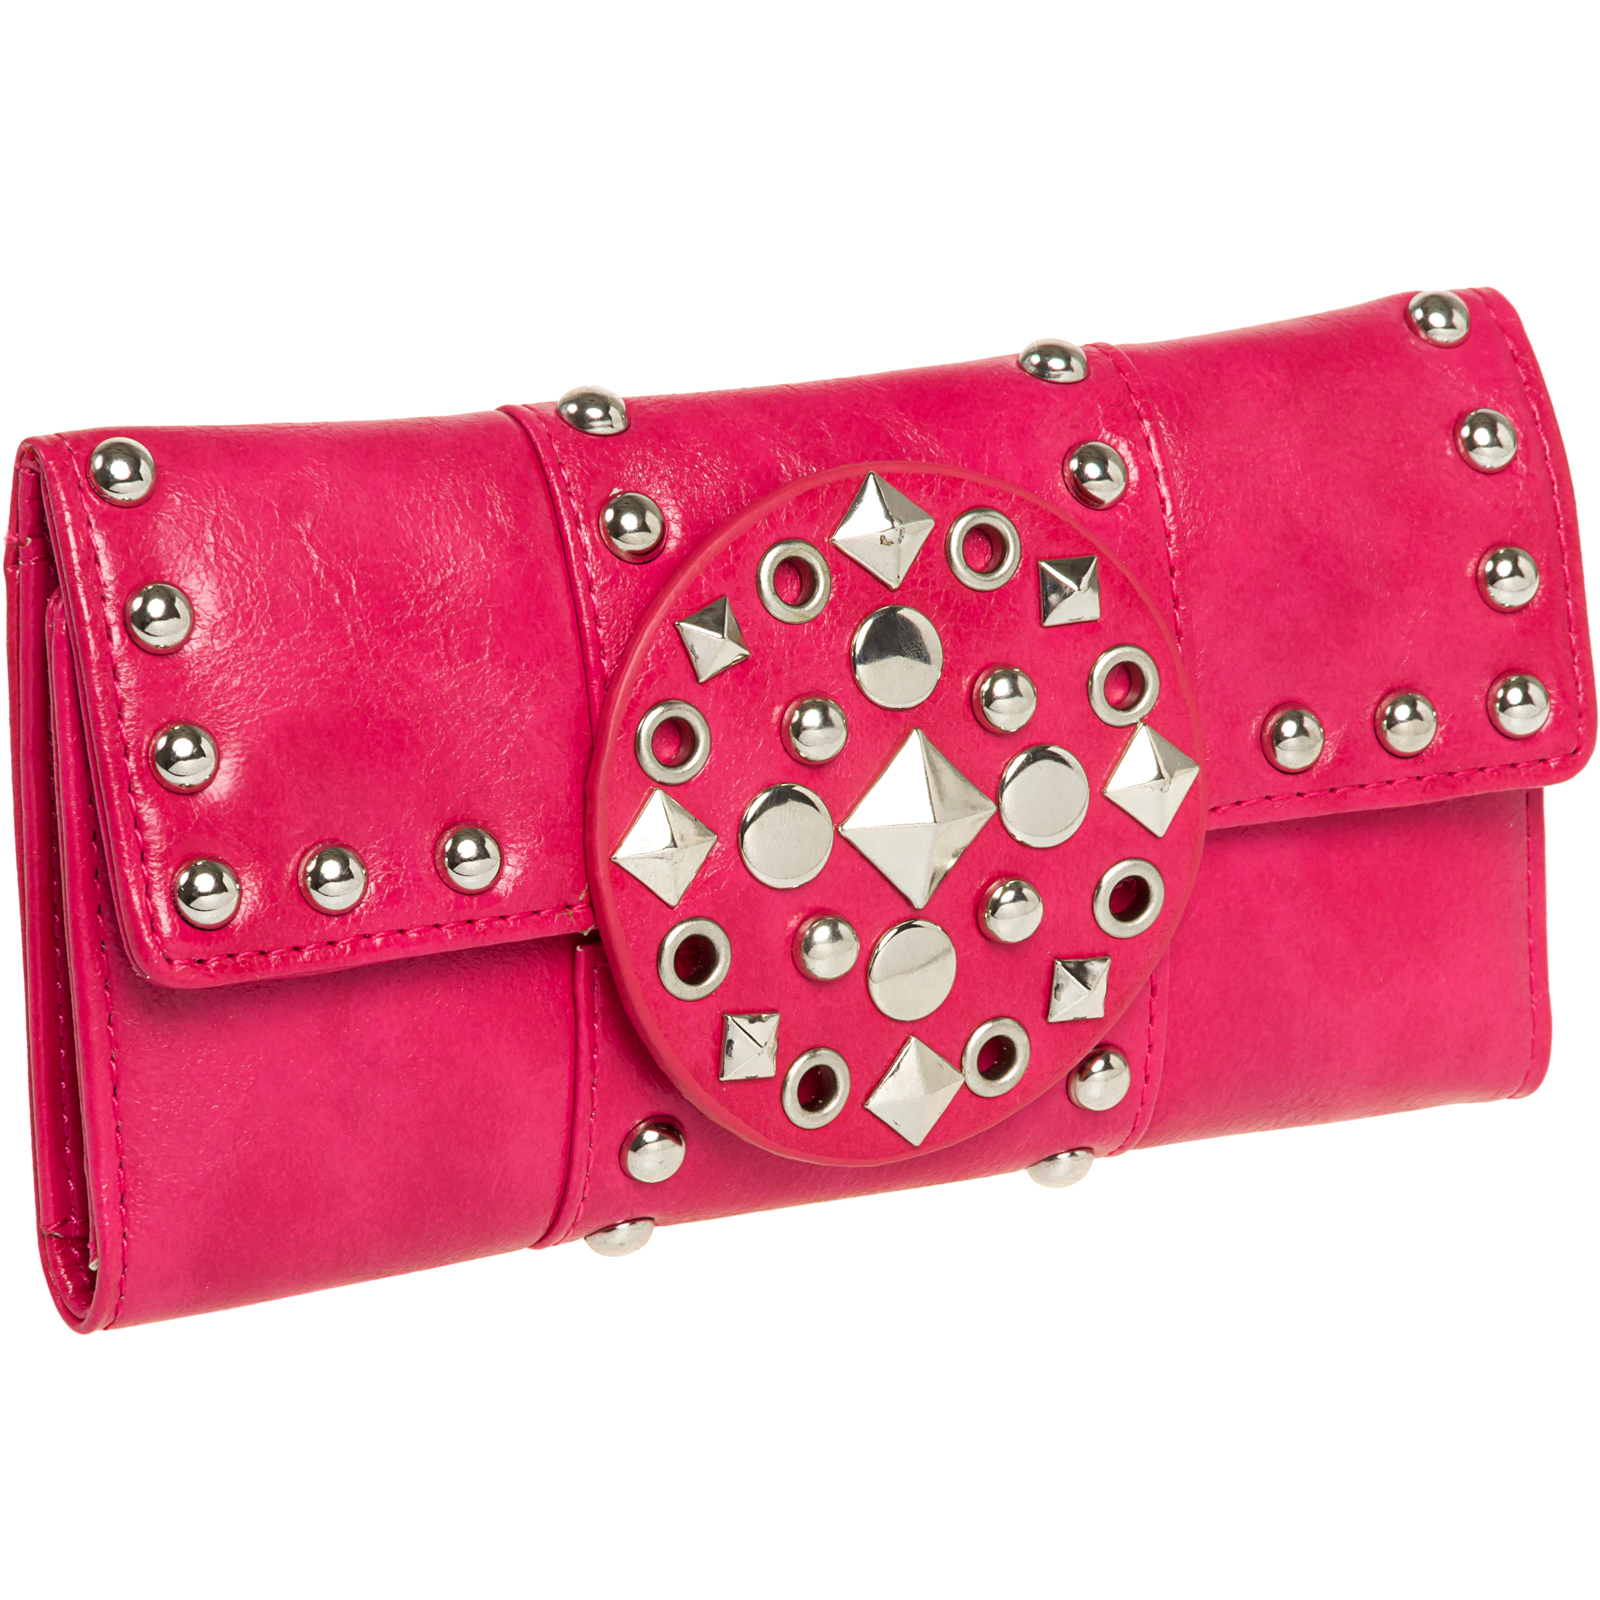 Tri Fold Rocker Womens Clutch Wallet : New w/Box